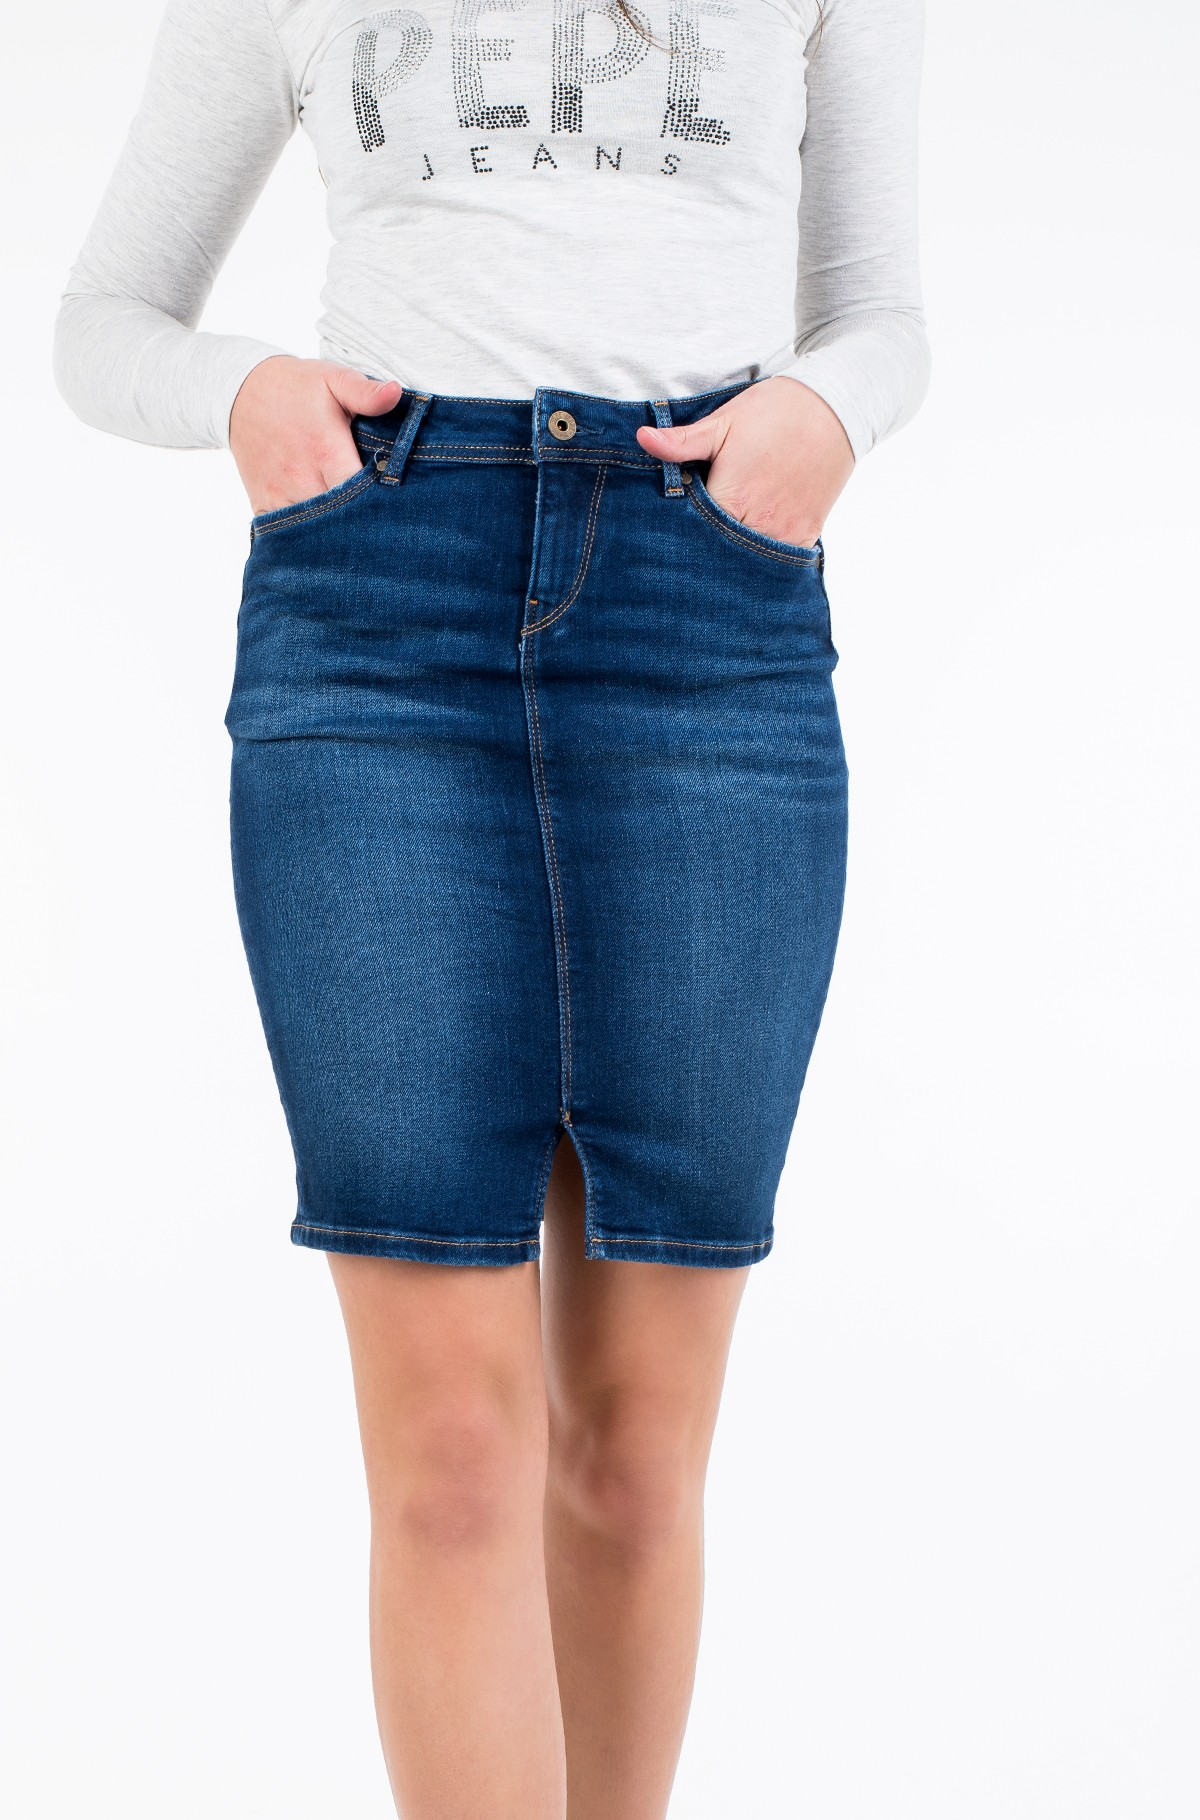 Denim skirt  TAYLOR/PL900443DB4-full-1